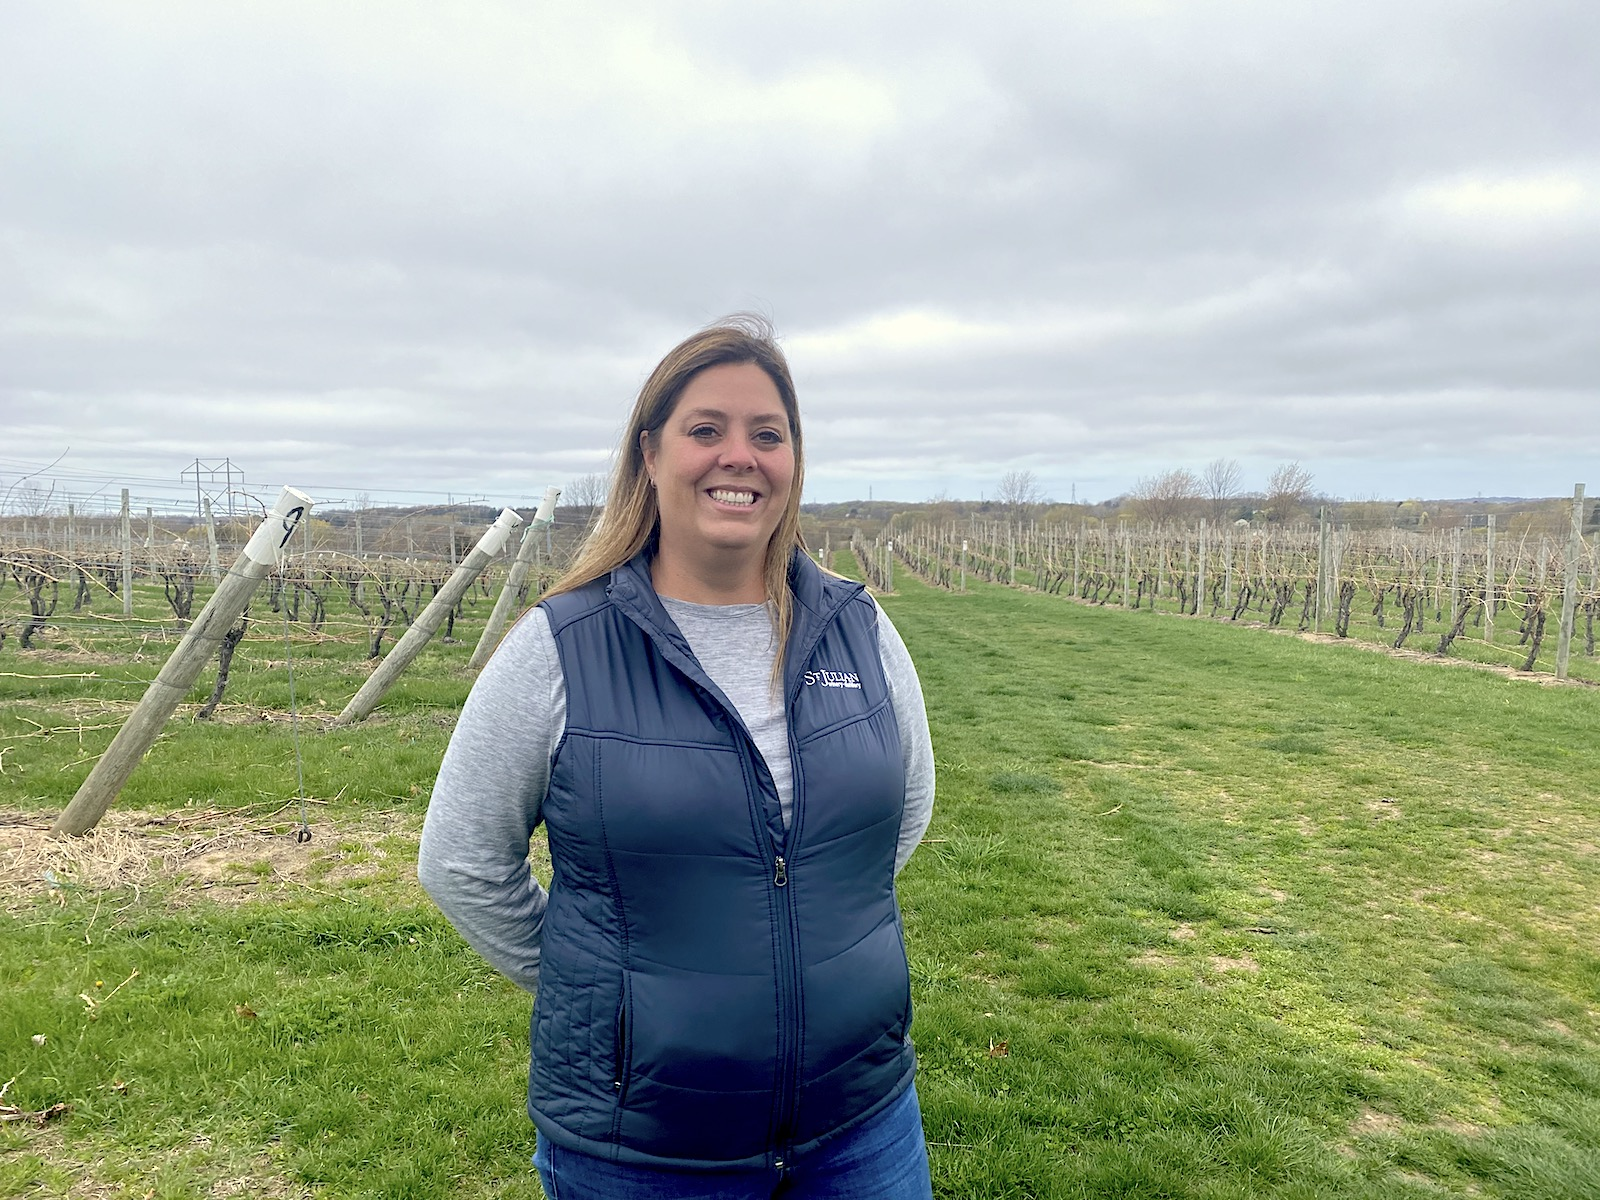 A photo of a woman in a black puffer vest and a long blue-gray shirt. She has blonde hair and is smiling. In the background are green fields.